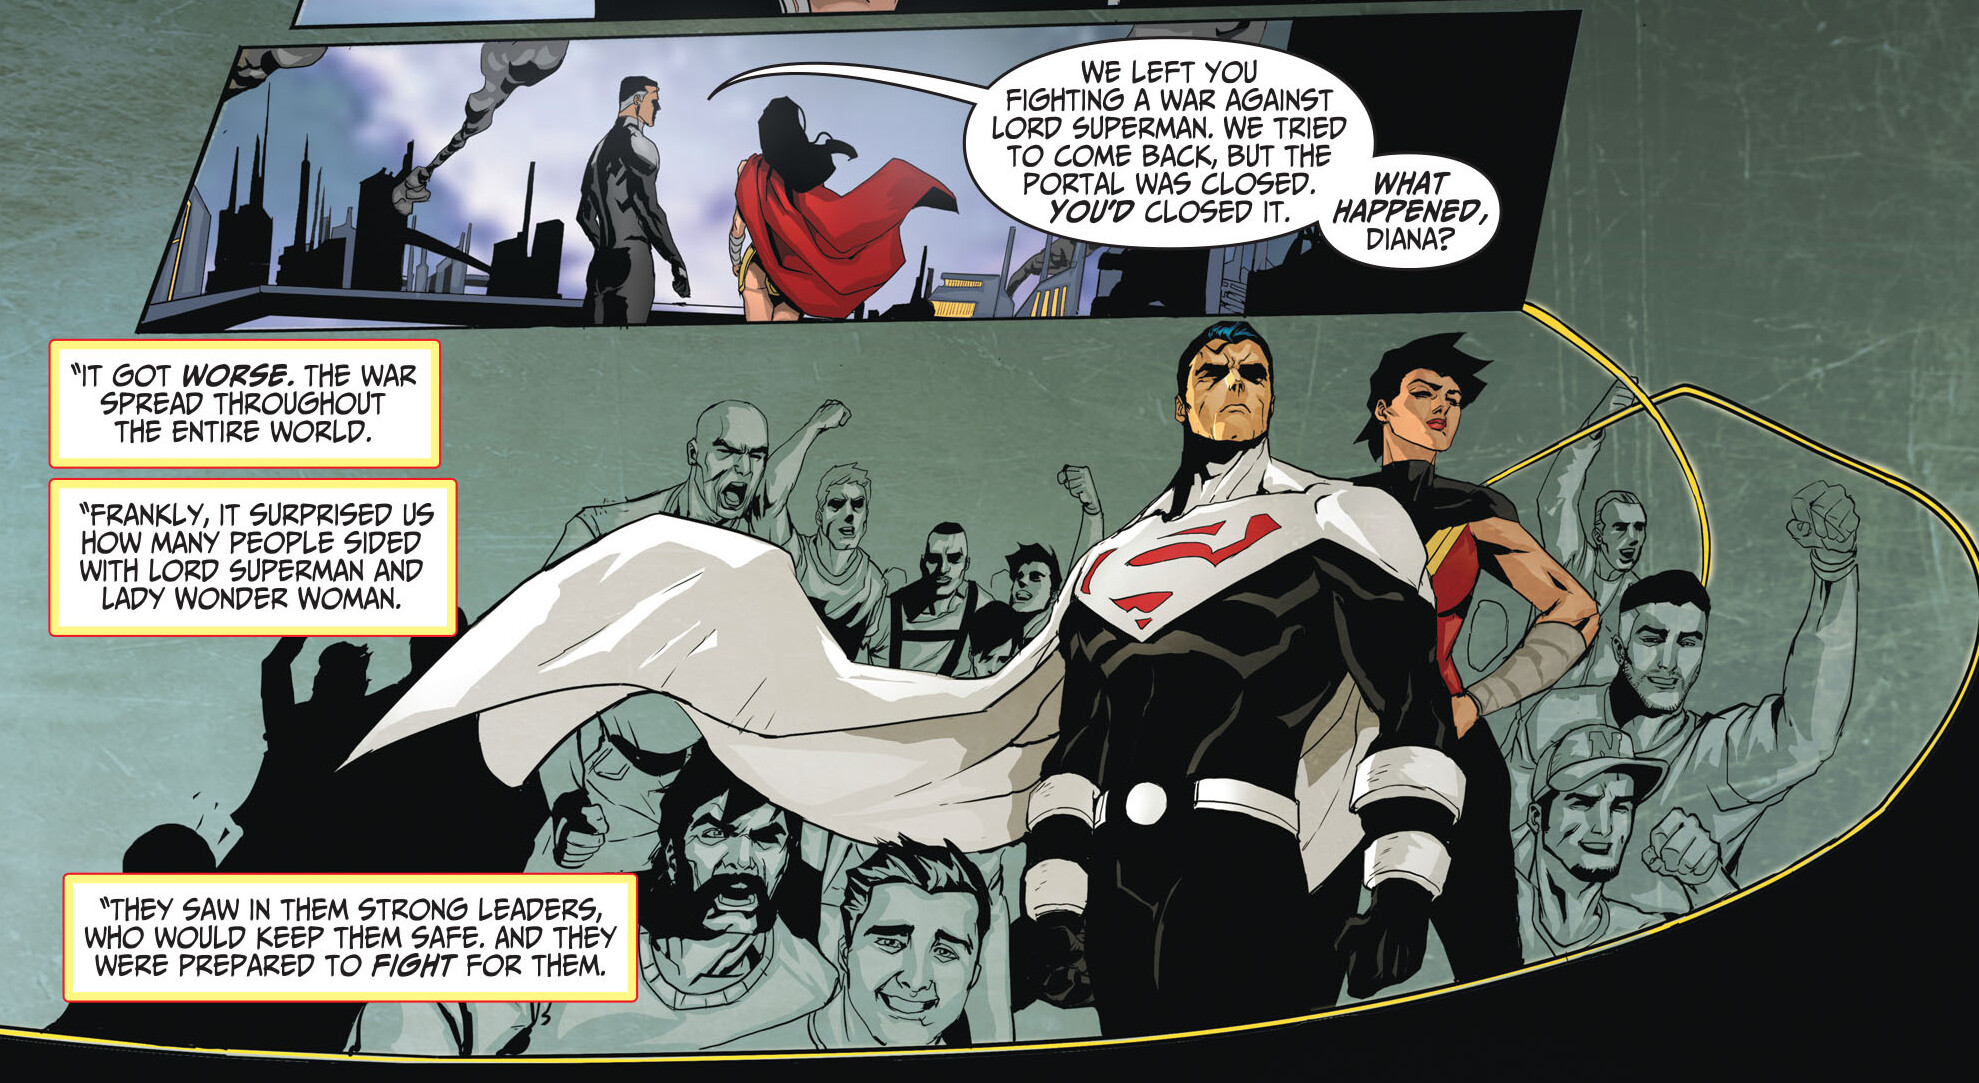 justice_lords_beyond_power_couple